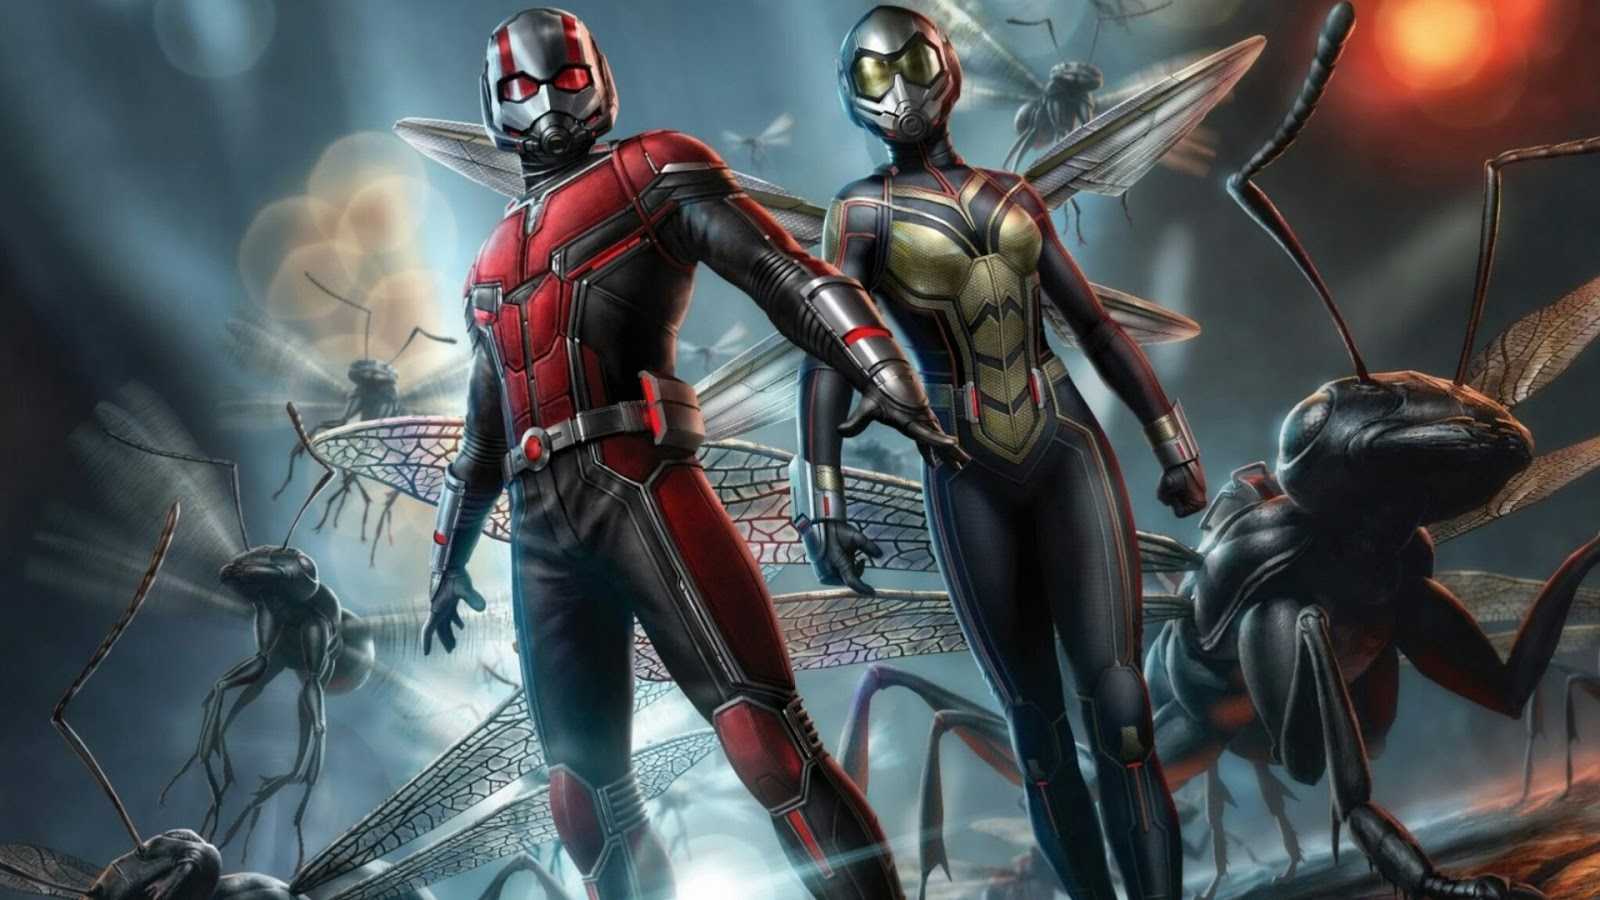 Ant Man and The Wasp are pivotal members of the Avengers and could appear as playable characters in the game.